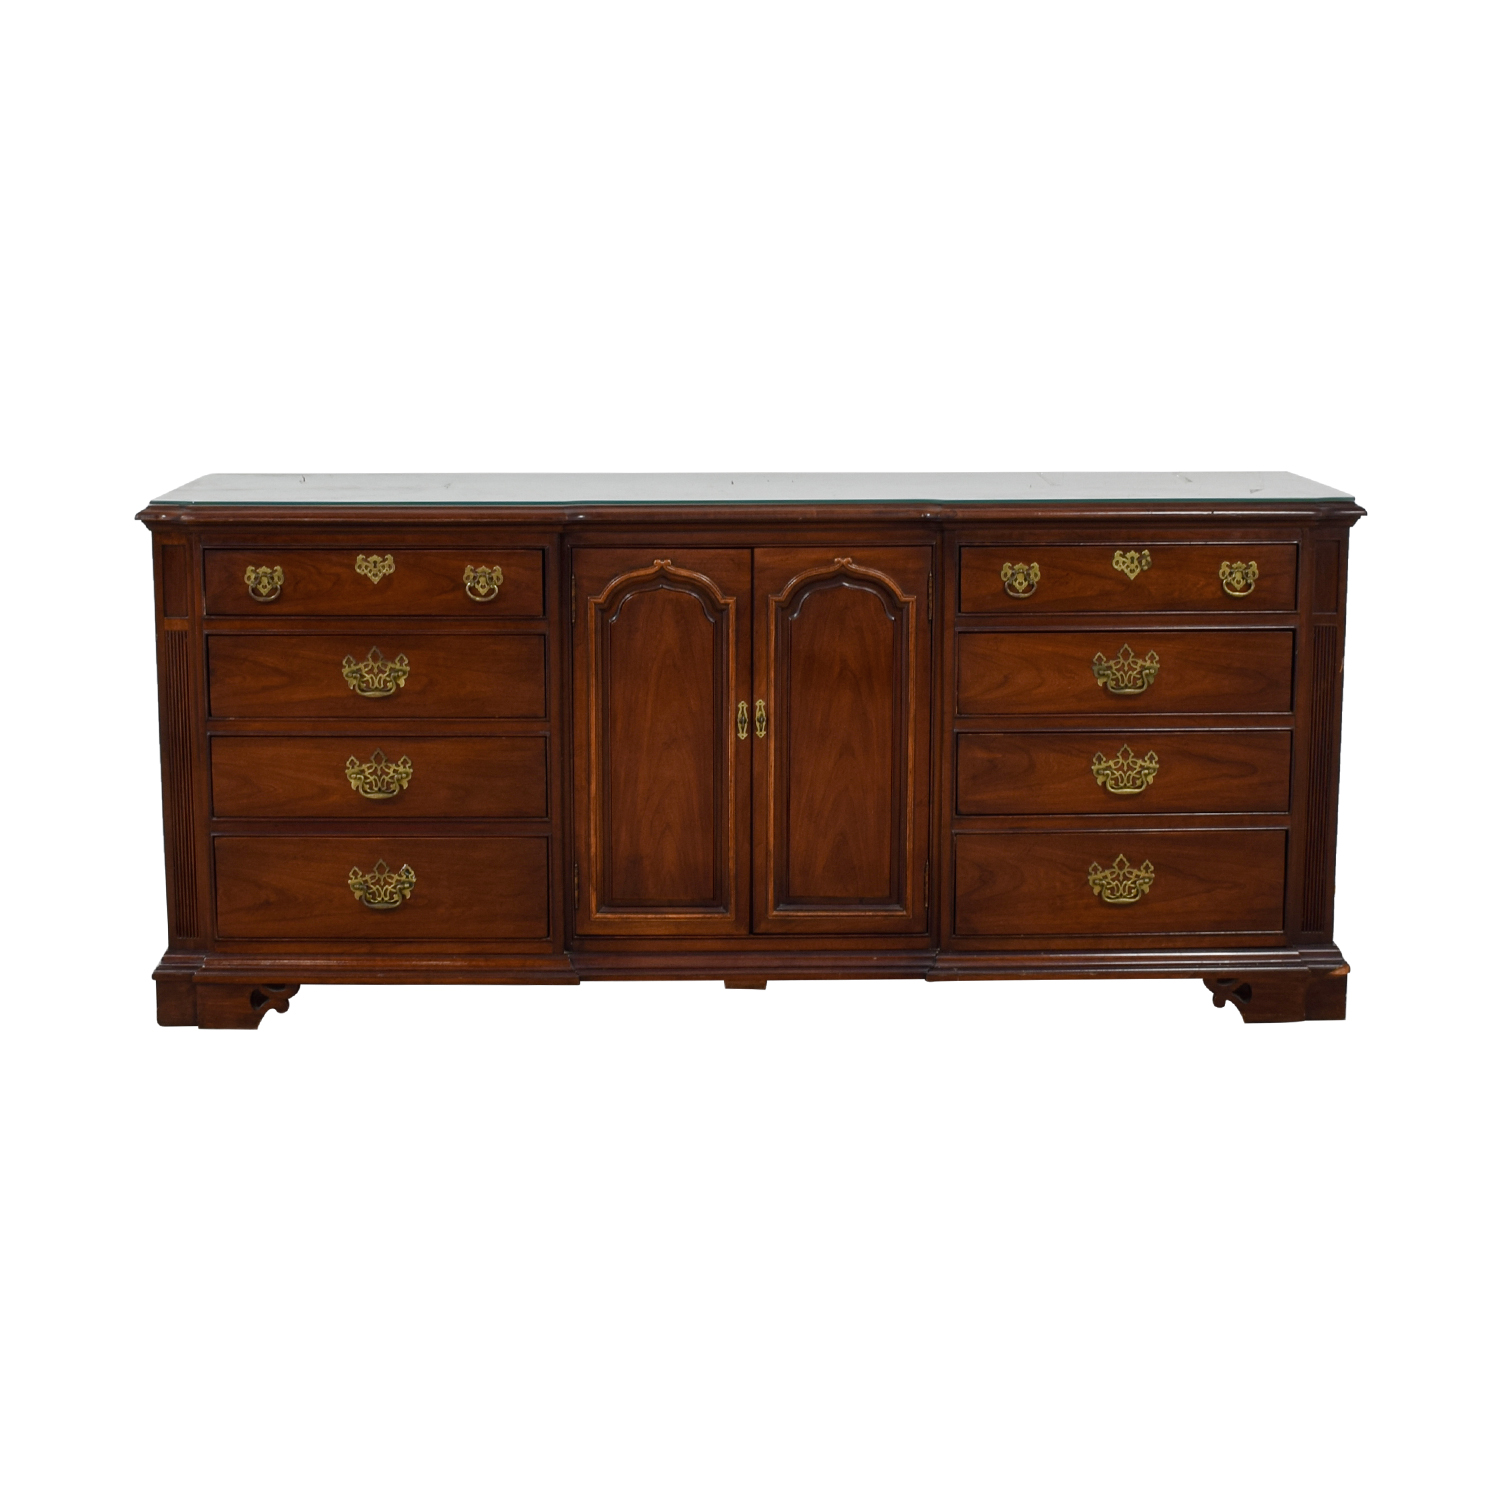 shop Thomasville Cherry Wood Twelve-Drawer Dresser Thomasville Sofas